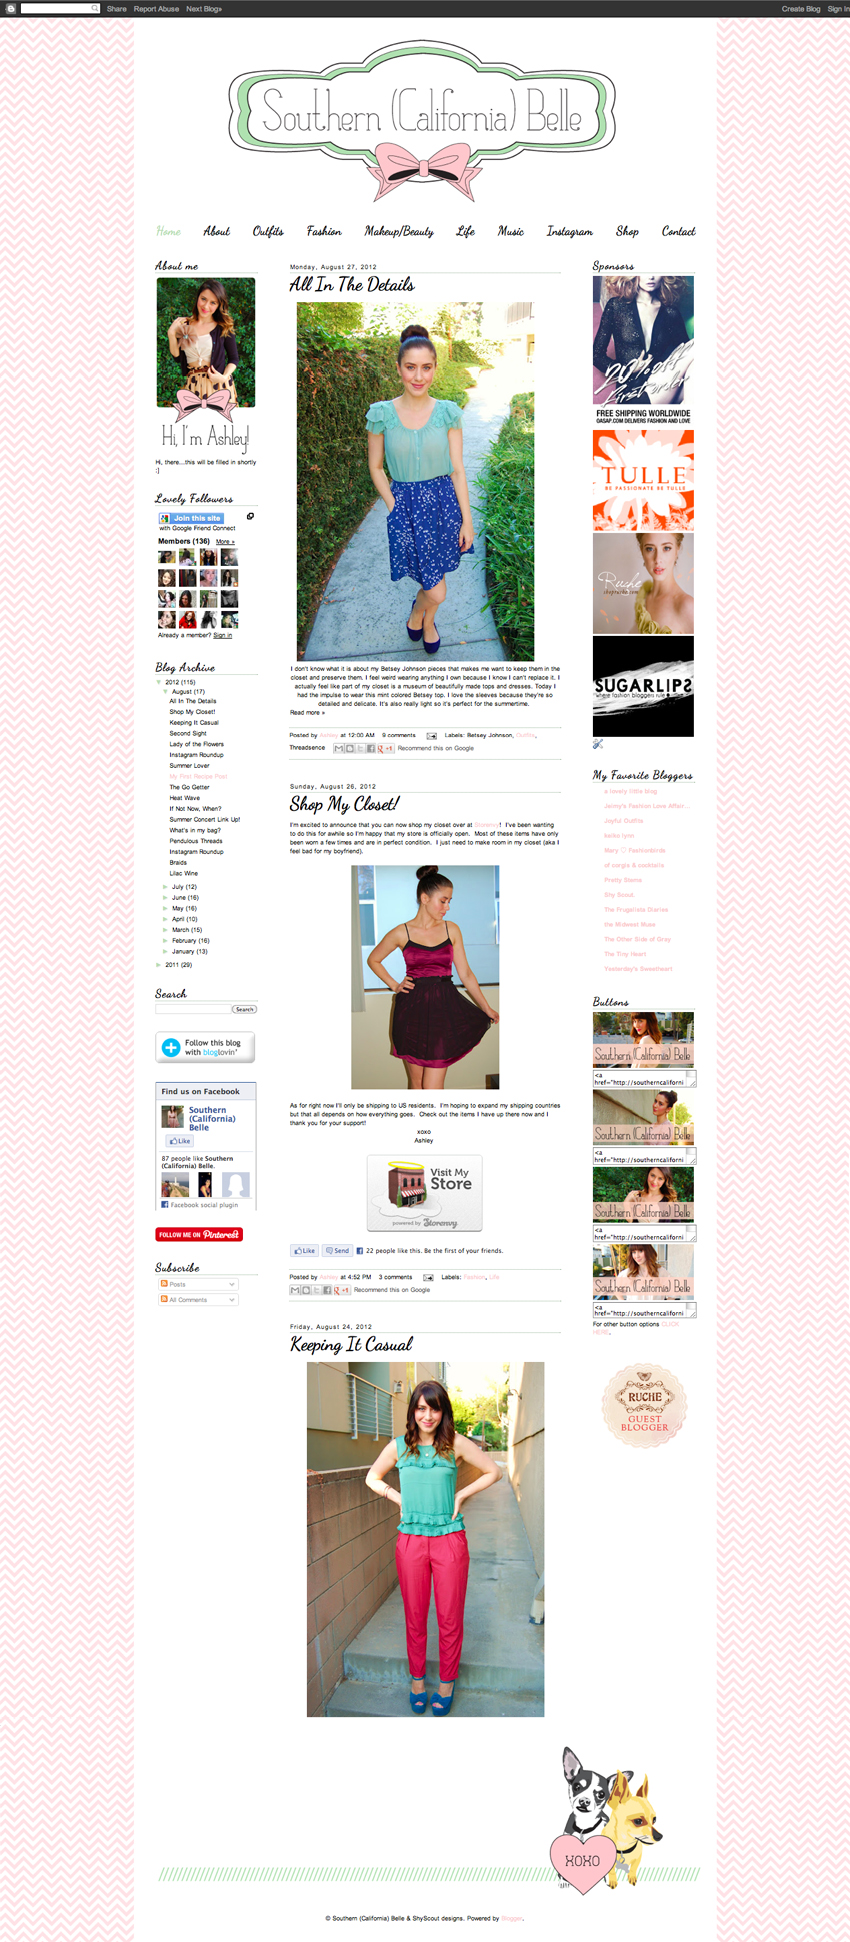 http://southerncaliforniabelle.blogspot.com/ redesign